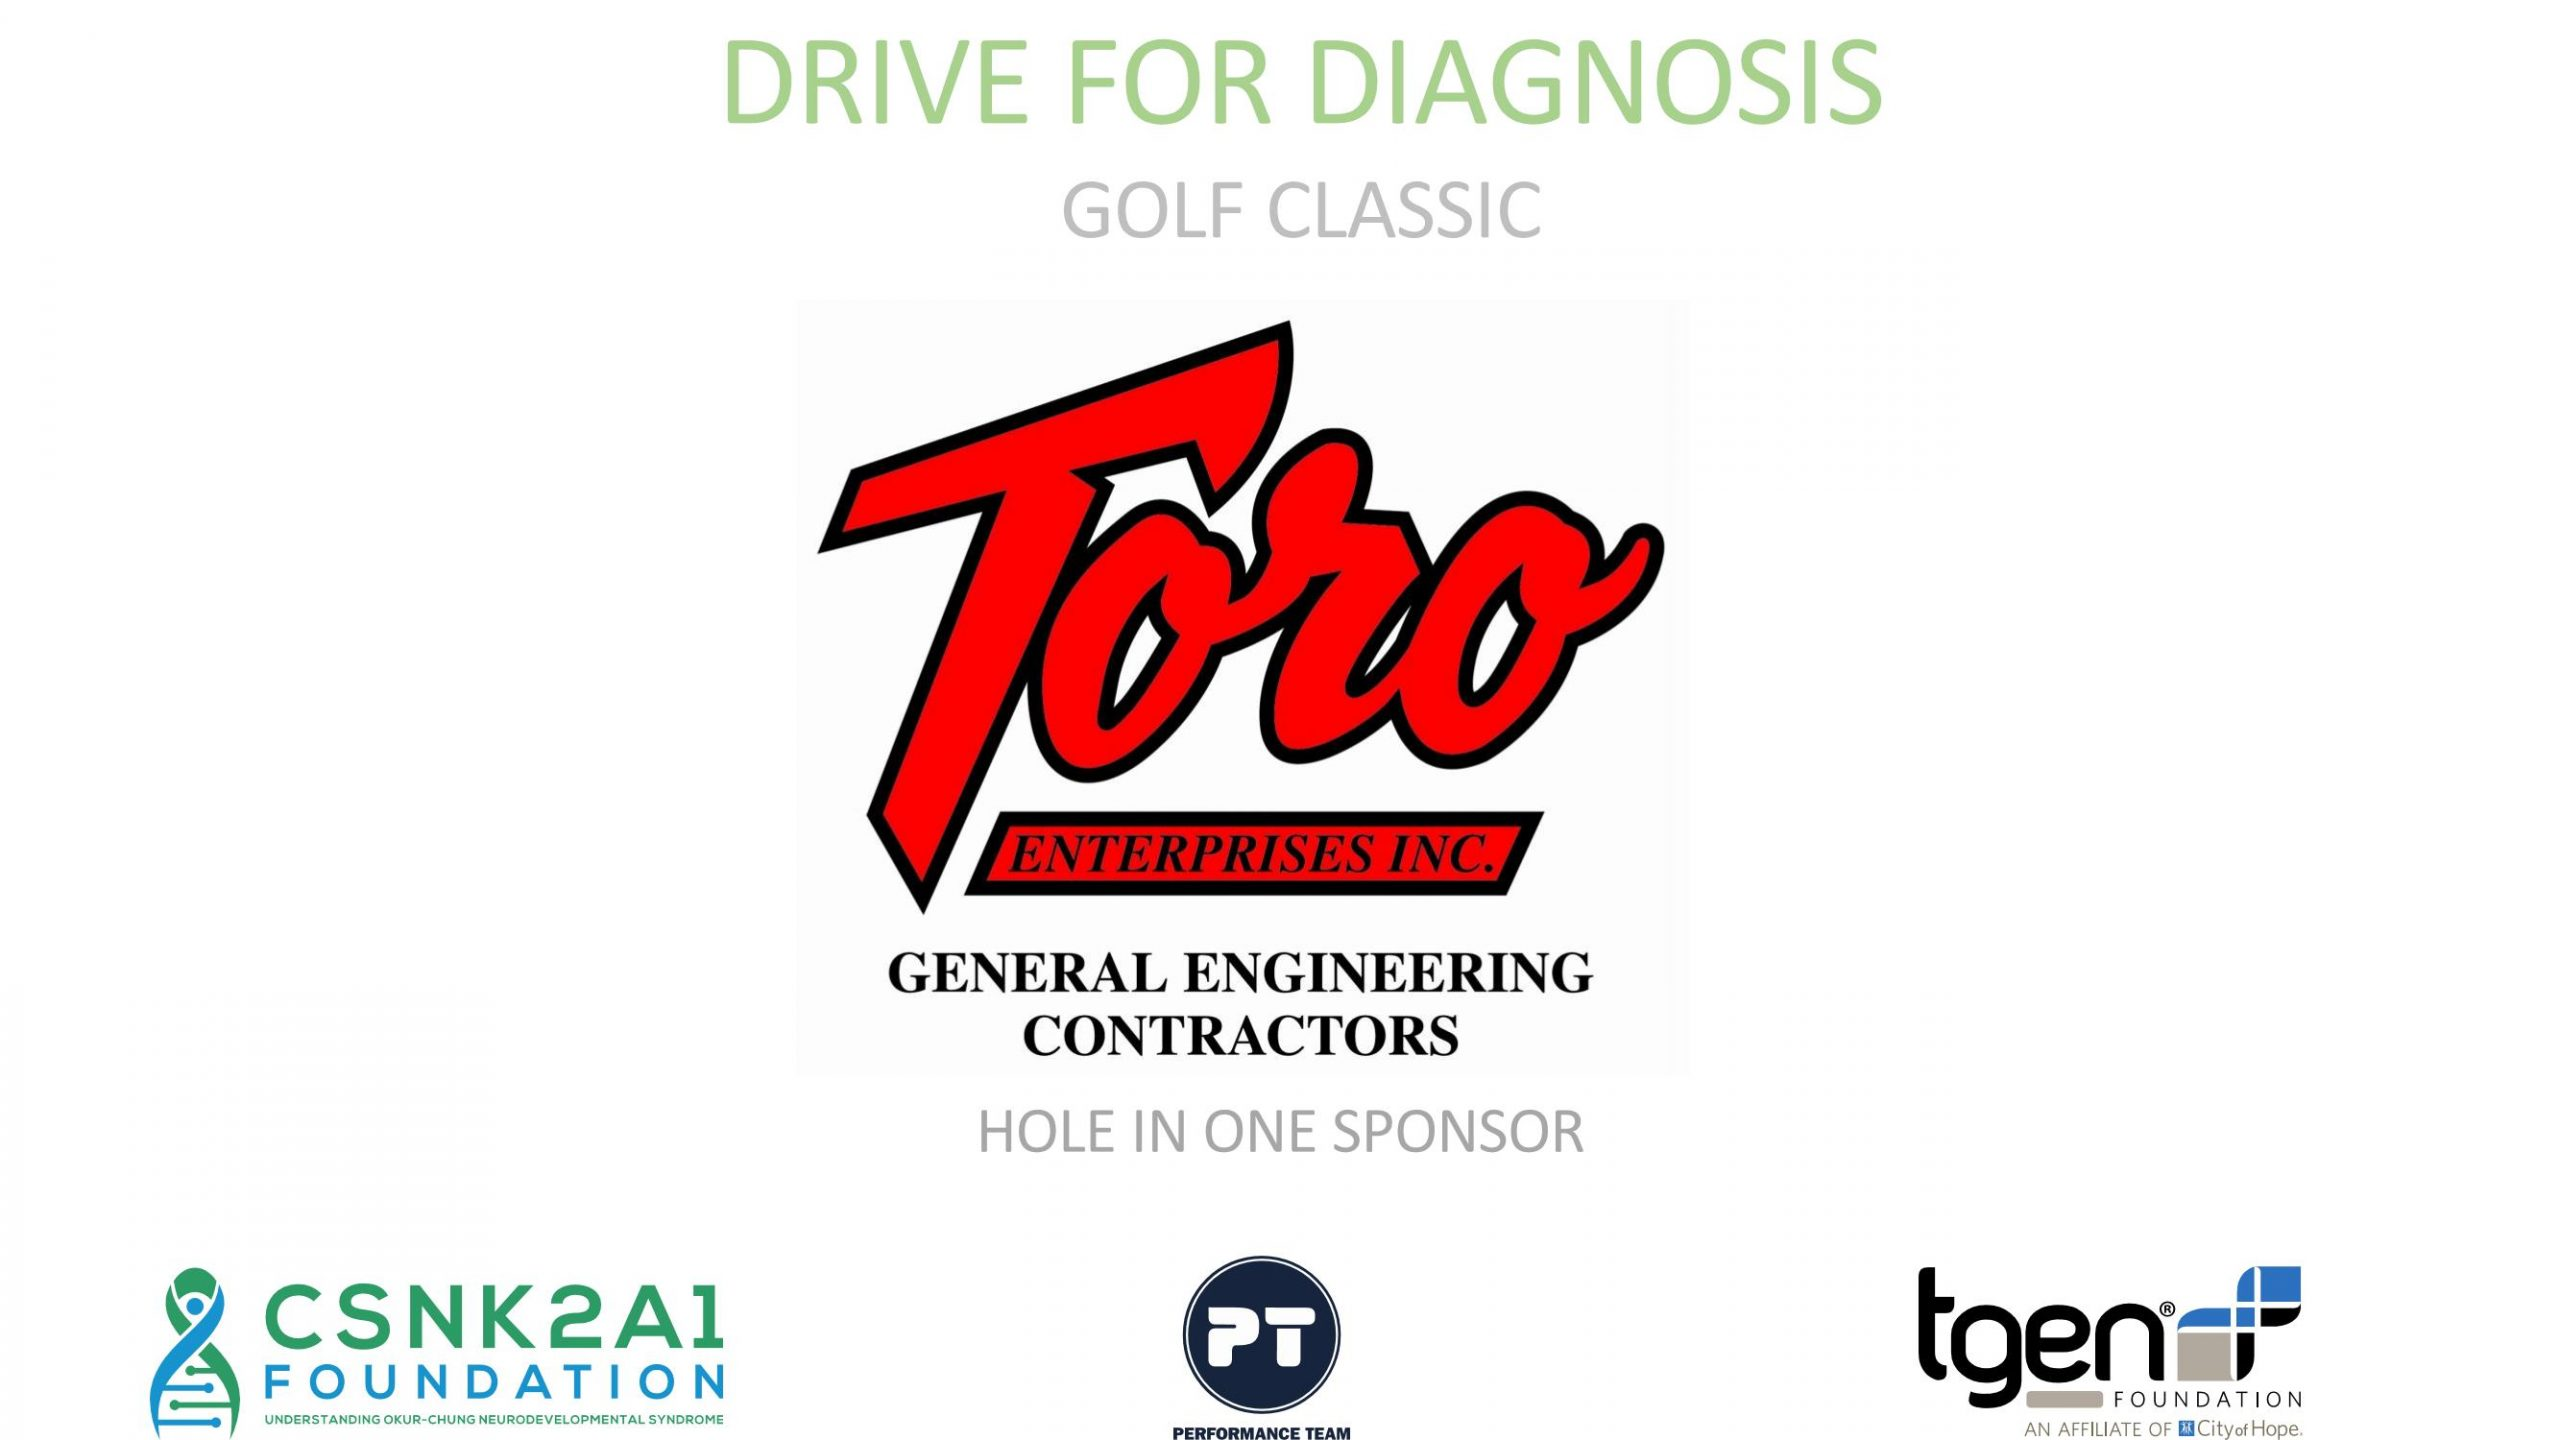 Hole in One Sponsor - Toro General Engineering Contractors